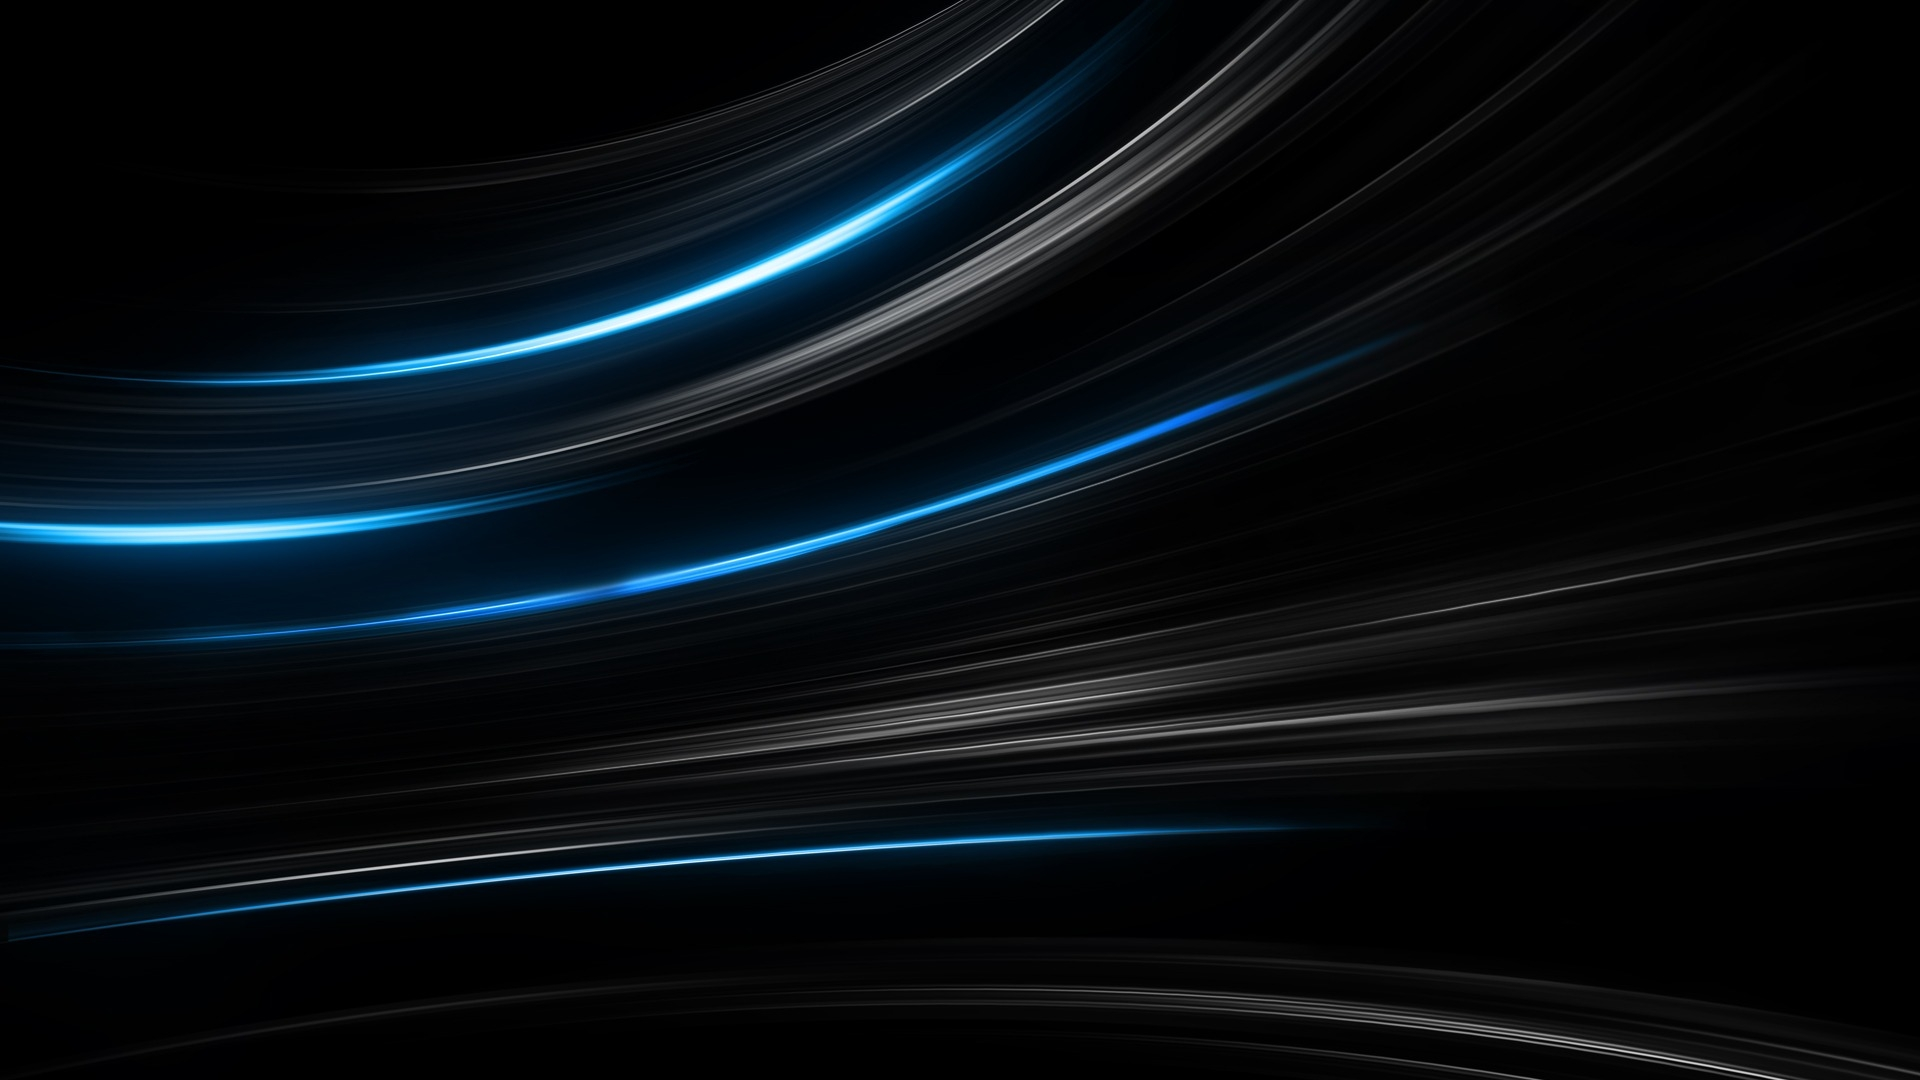 Get The Latest Black Blue Abstract News Pictures And Videos Learn All About From Wallpapers4uorg Your Wallpaper Source